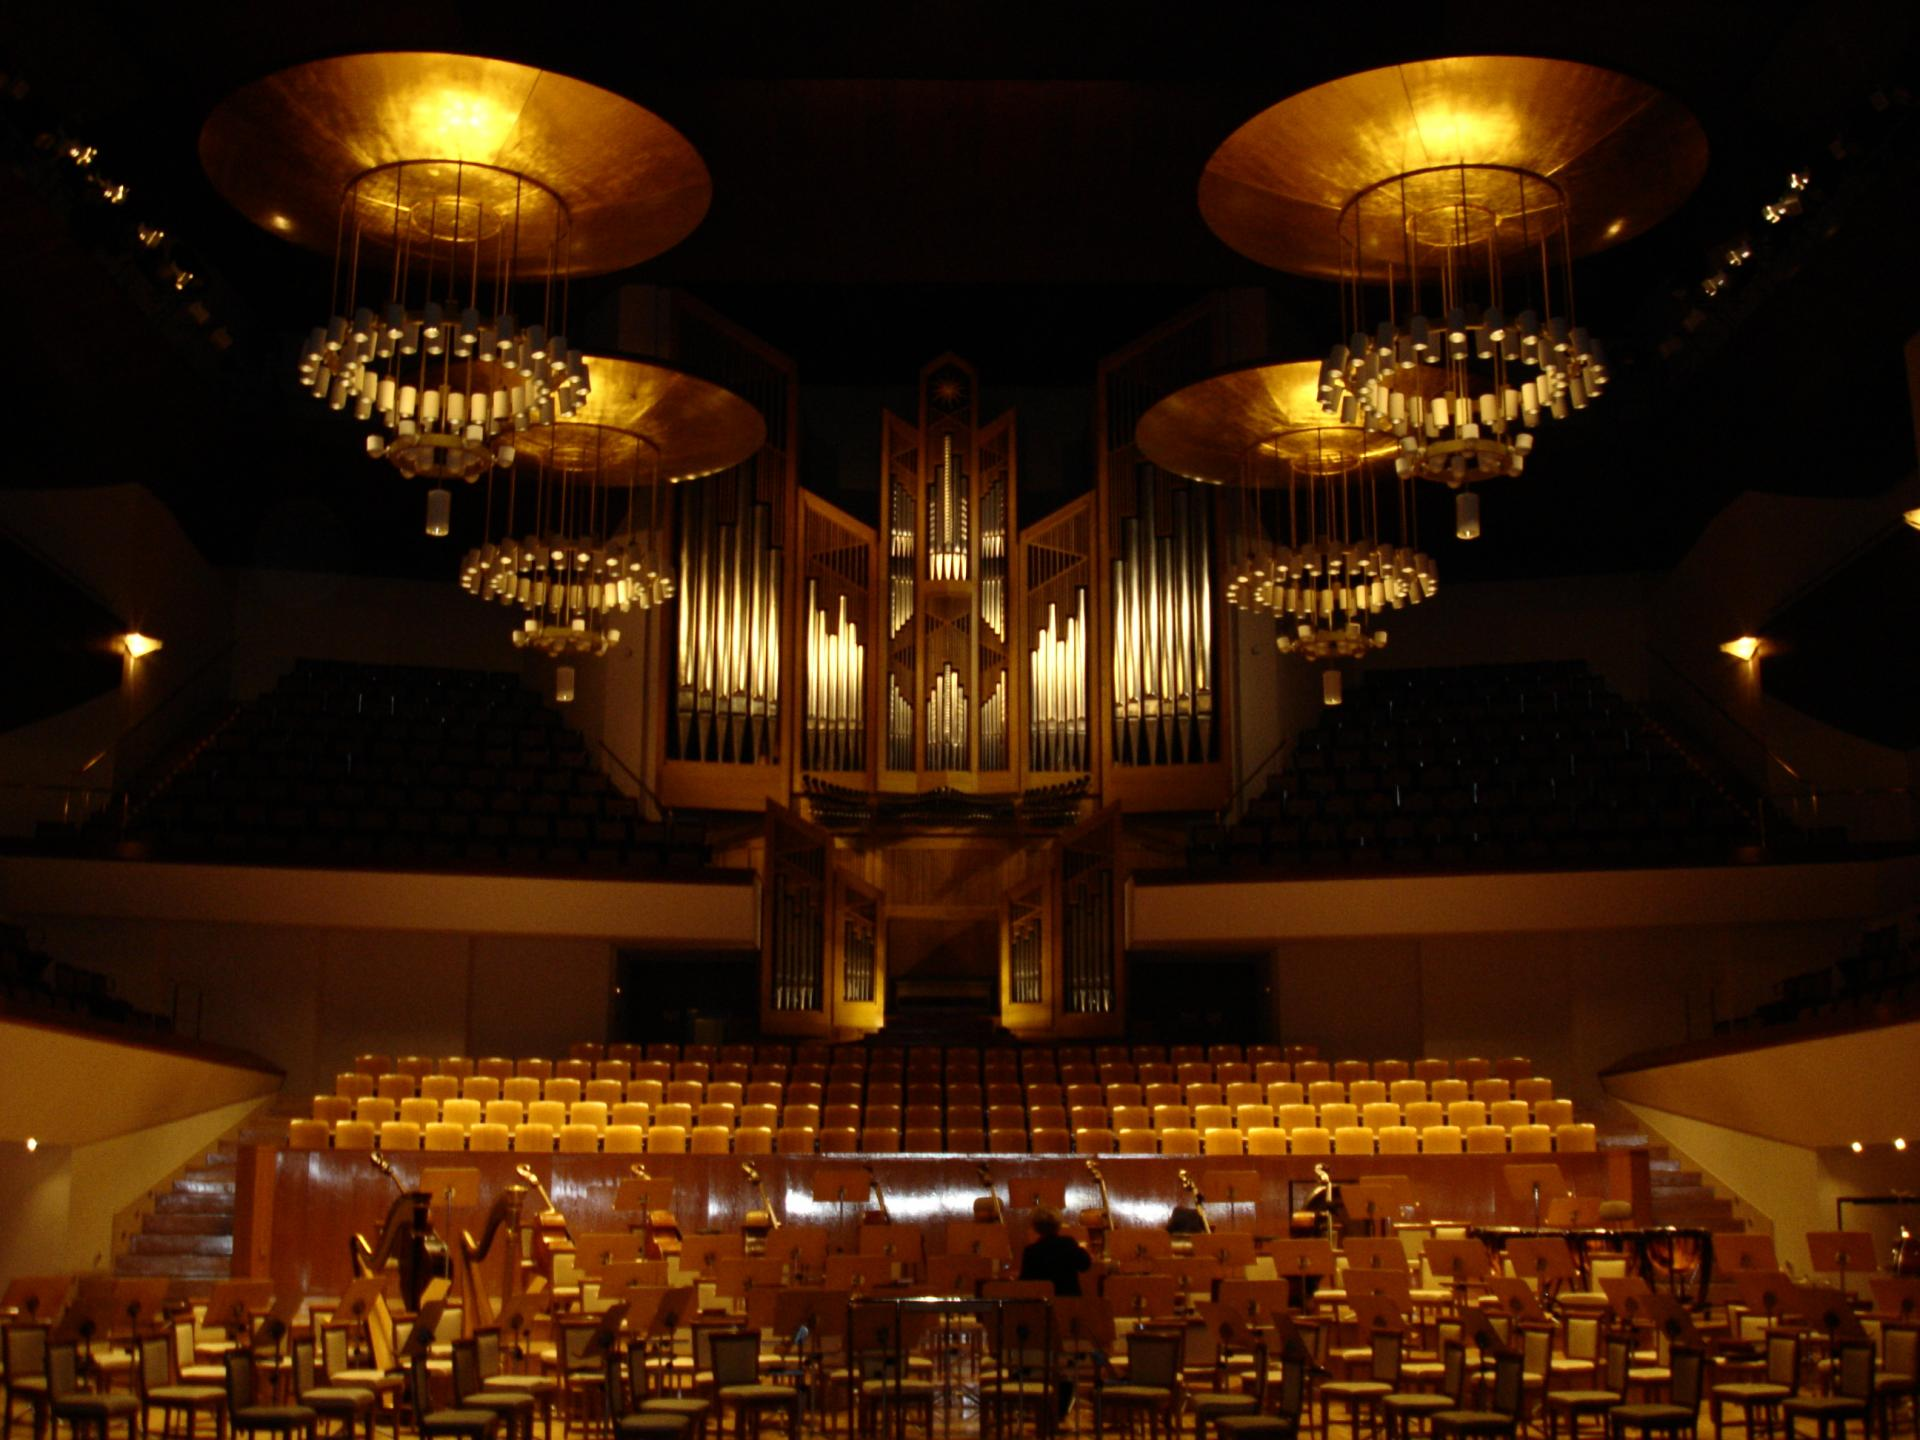 Auditorio nacional de musica madrid 01